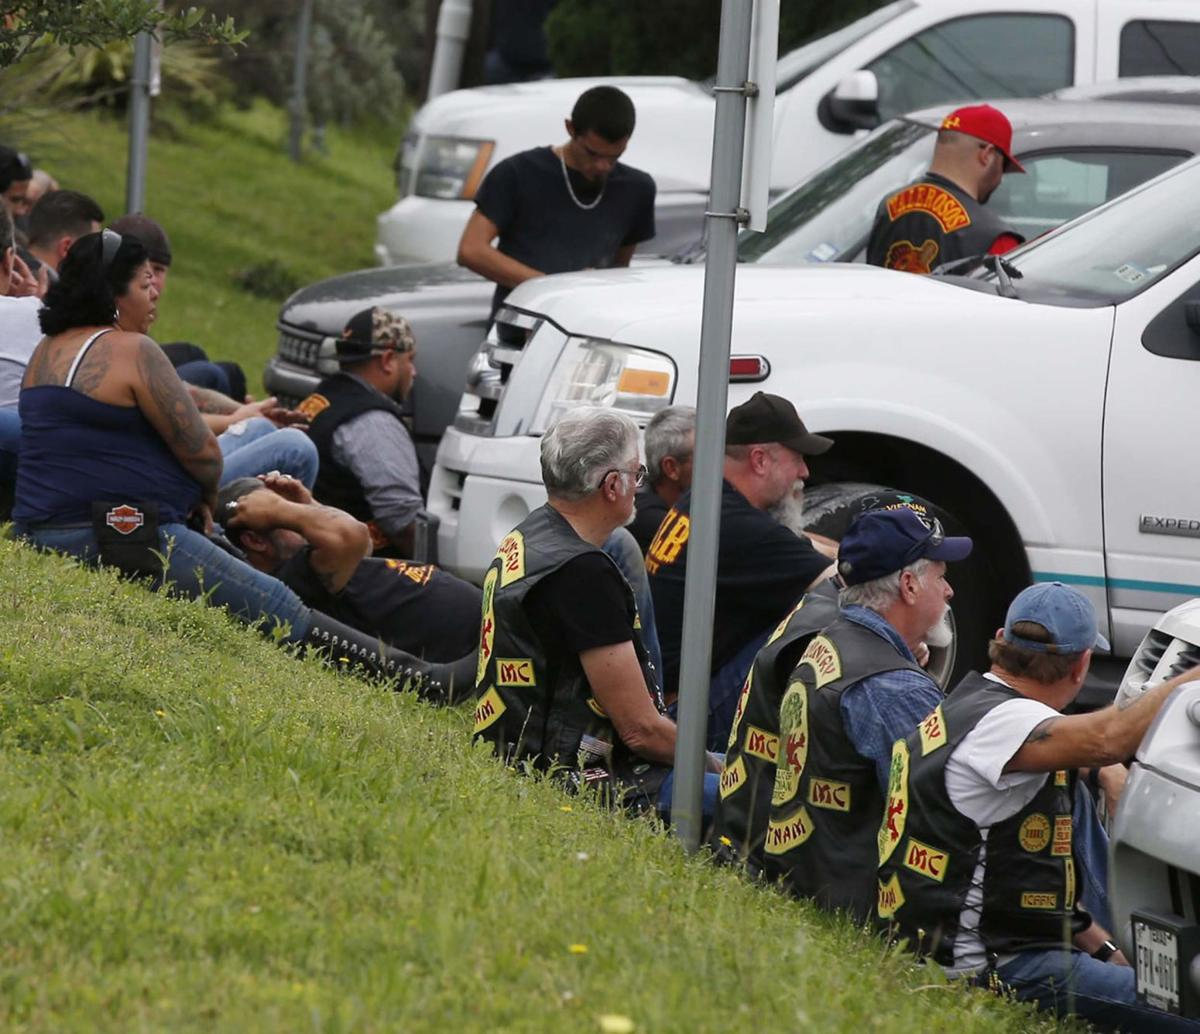 Timeline of events: May 17, 2015 Twin Peaks biker shootout